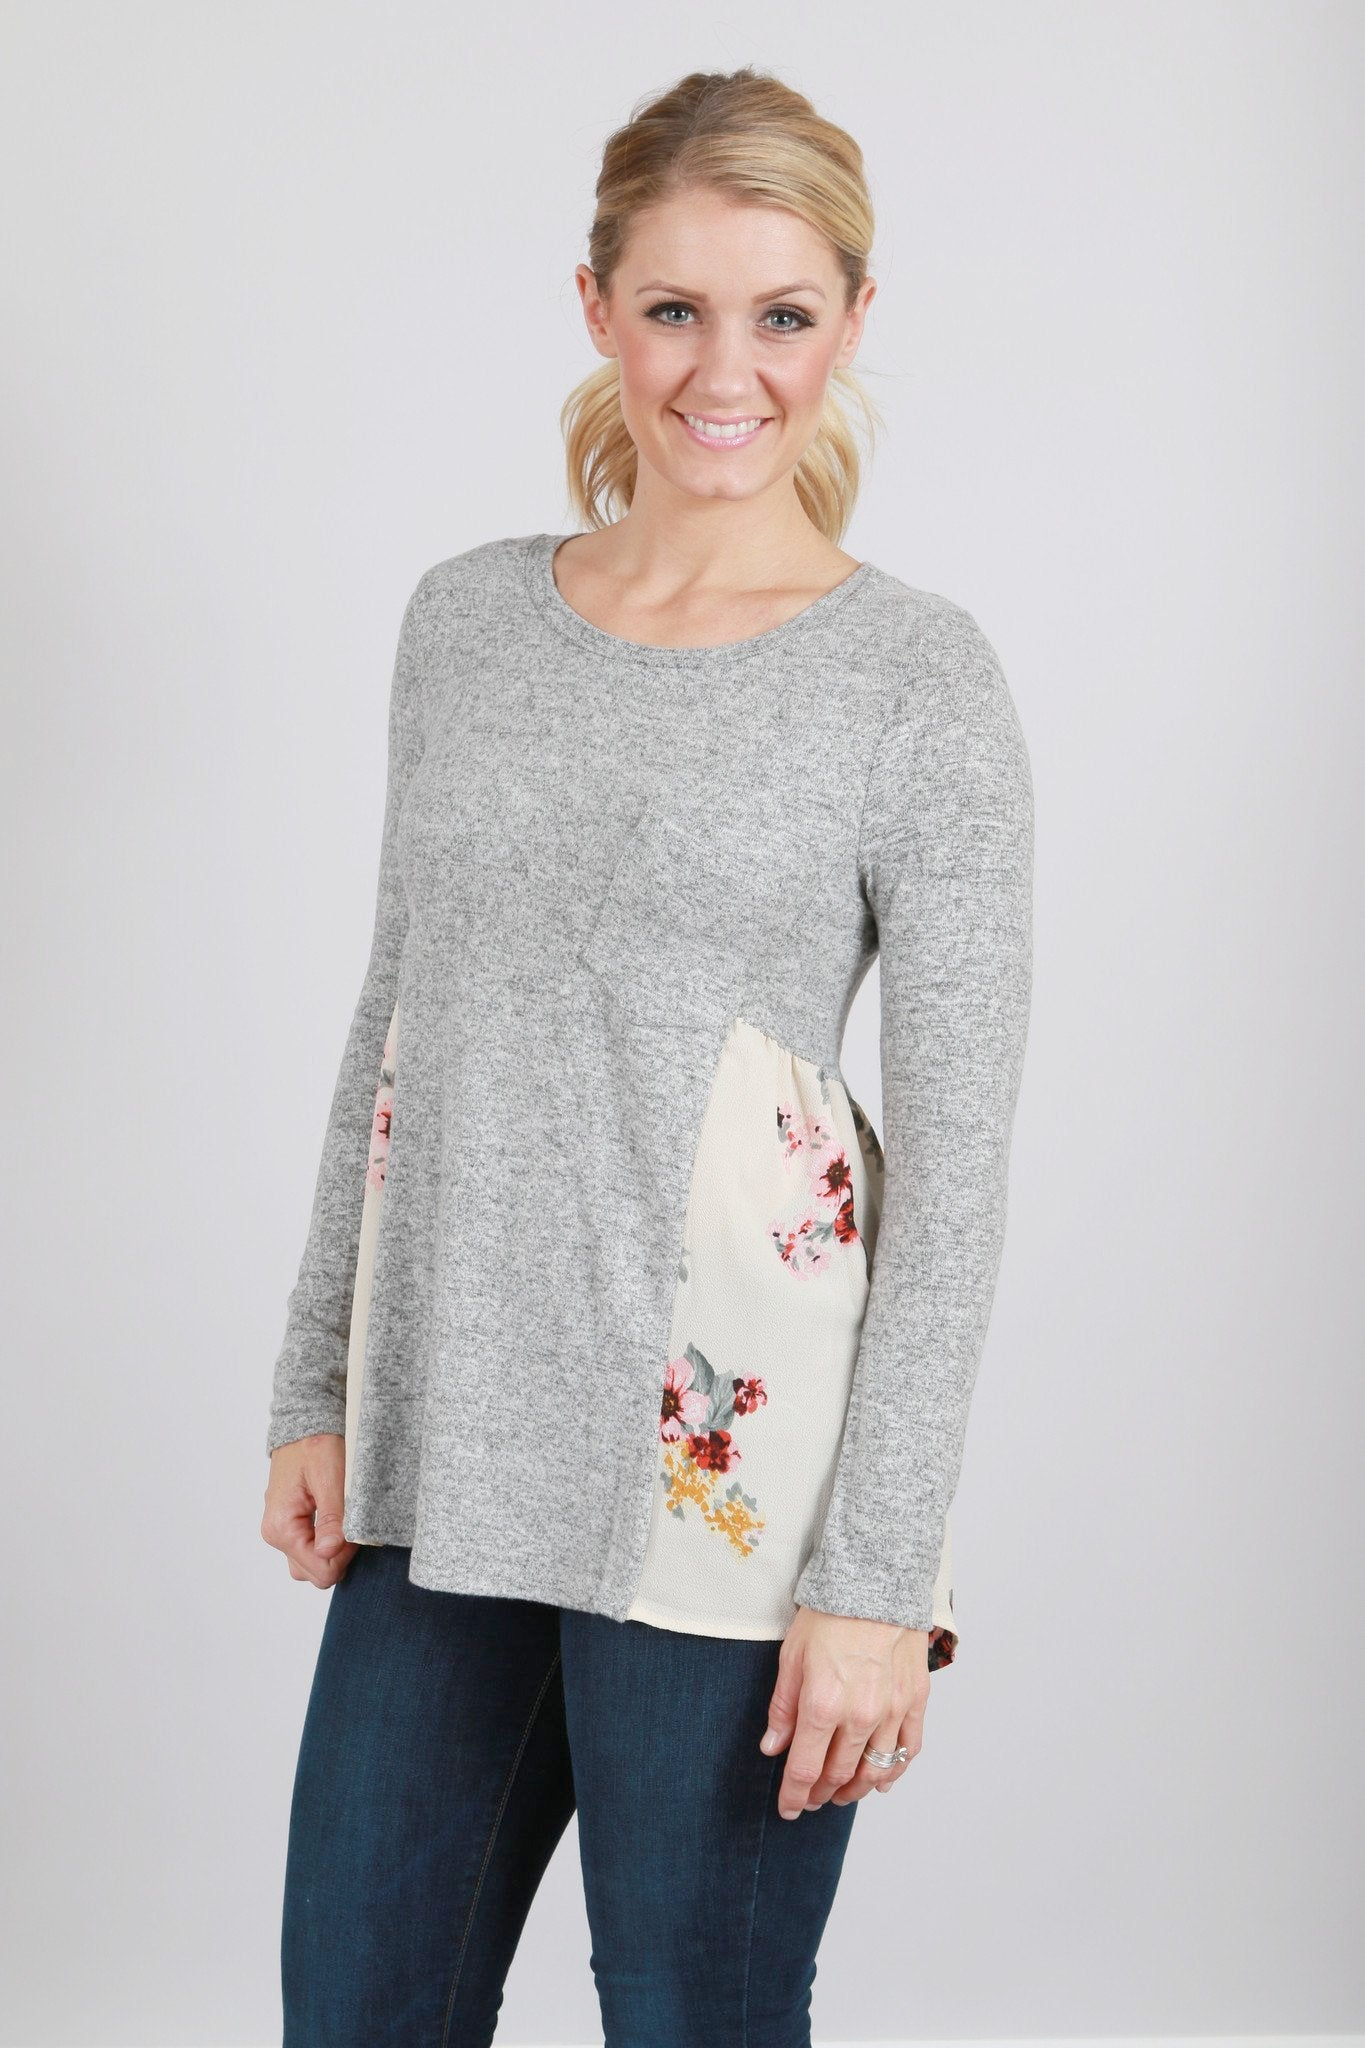 Grey sweater with Floral detail